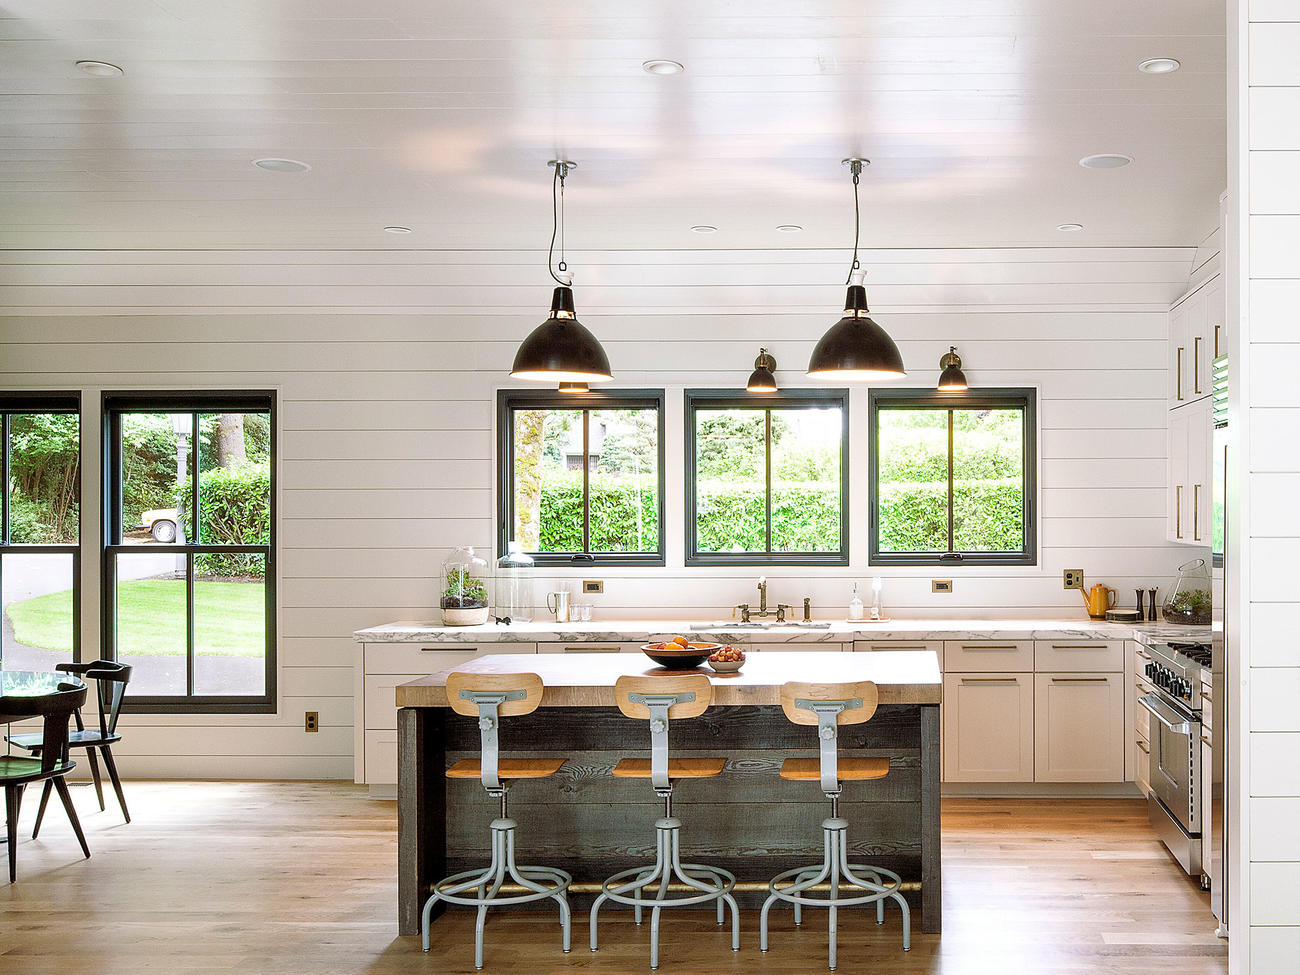 kitchen magazine cheapest place to buy cabinets design ideas sunset top 15 trends try now